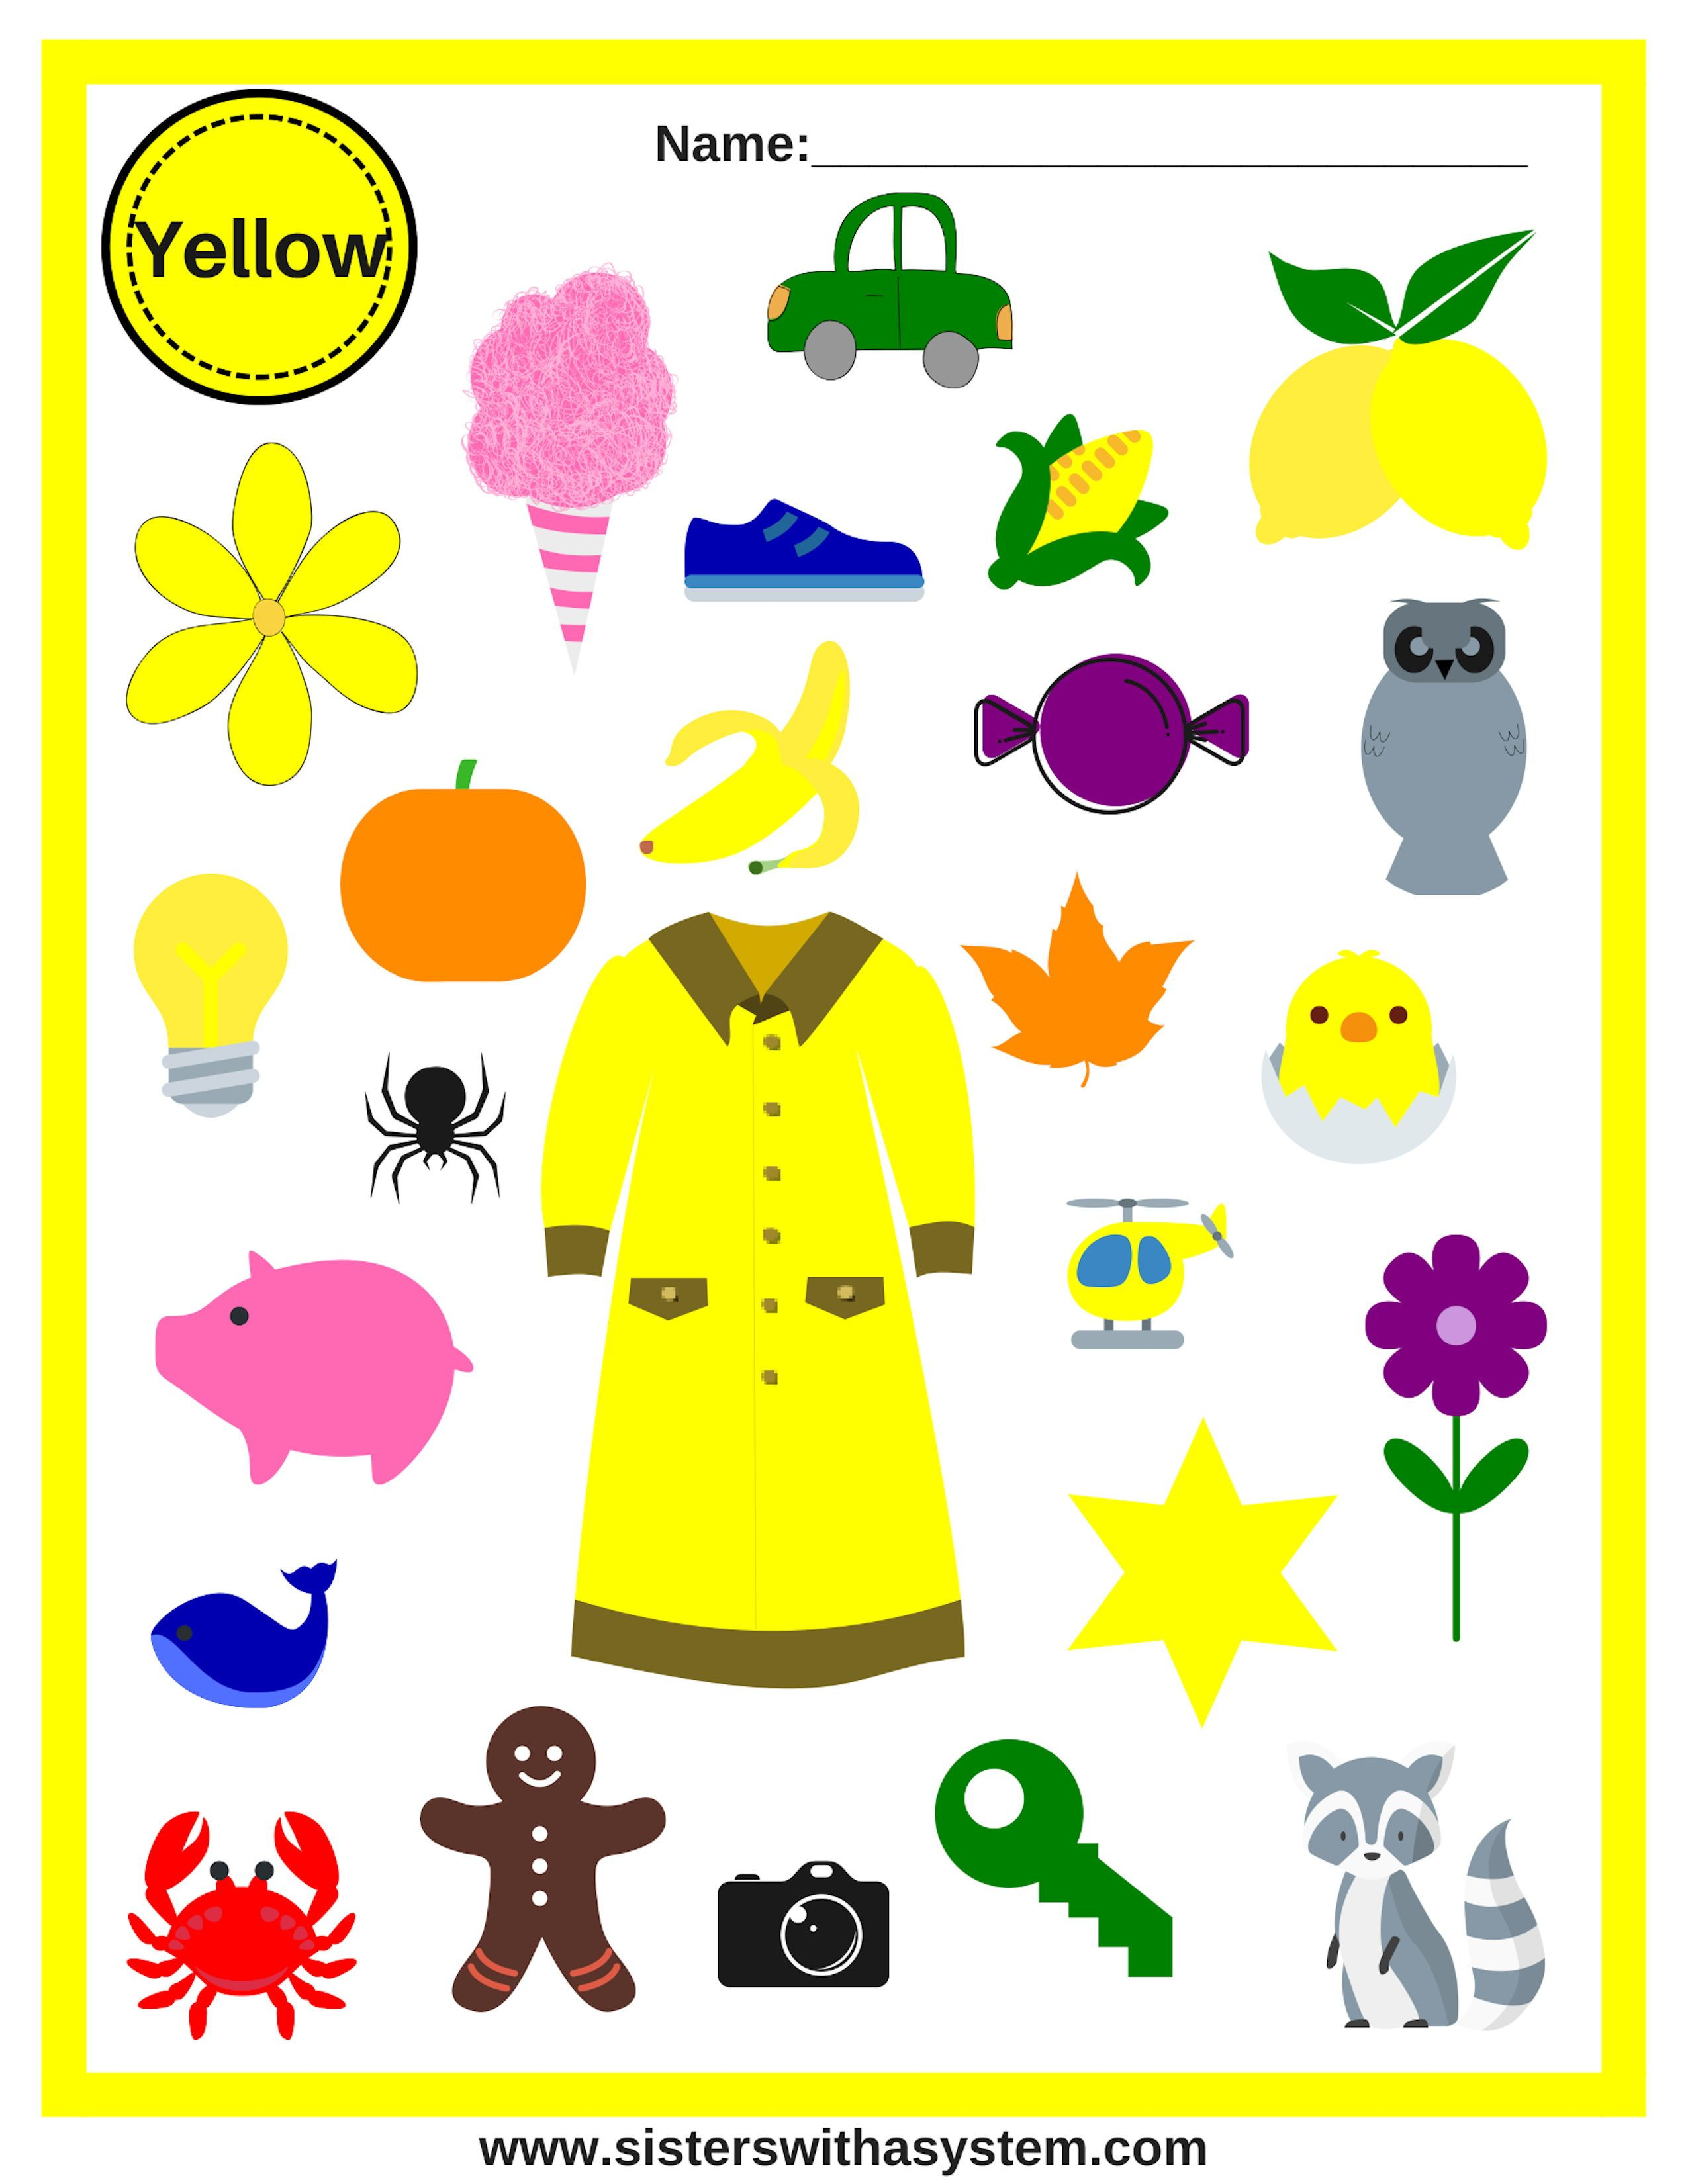 How Many Yellow Items Can You Find Teaching Colors Color Activities Free Homeschool Printables [ 3300 x 2550 Pixel ]